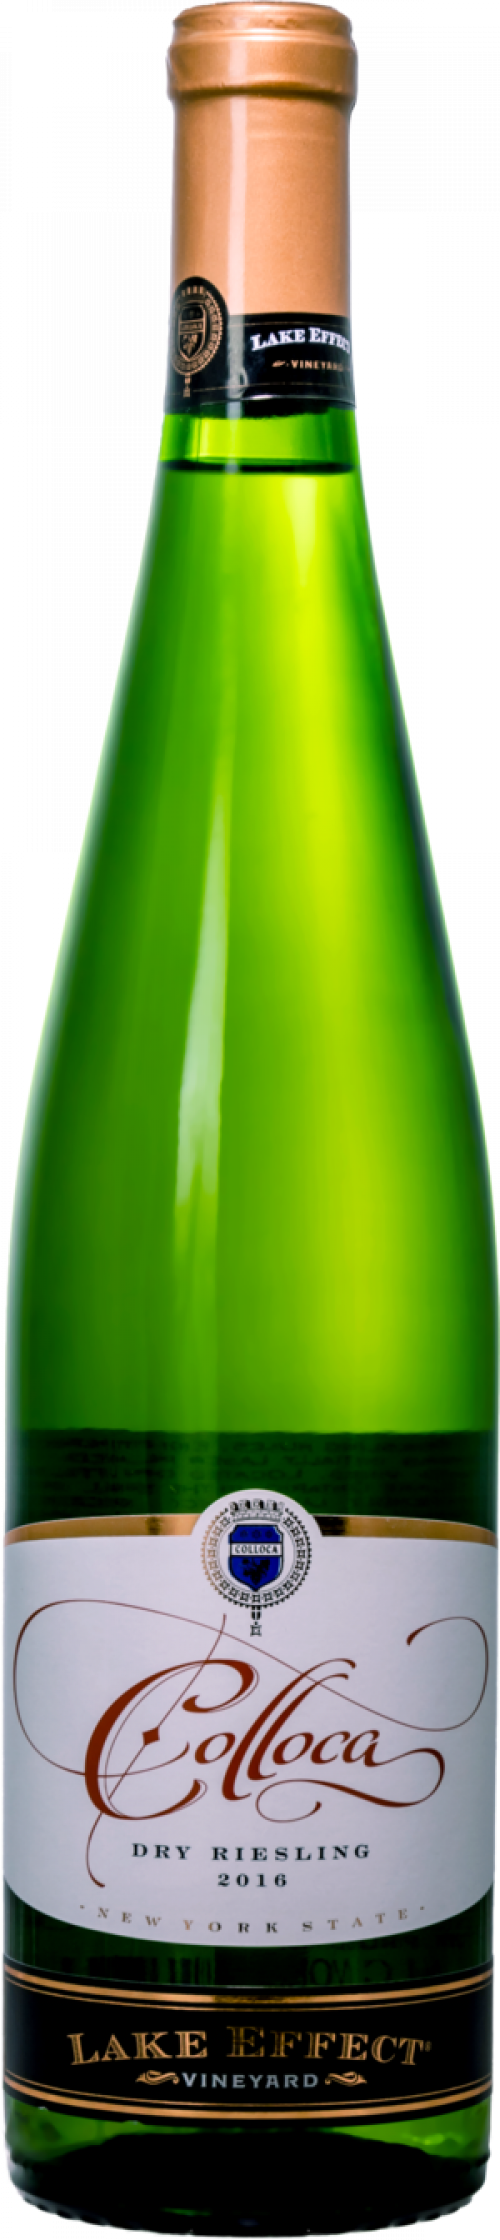 2016 Colloca Lake Effect Dry Riesling 750ml